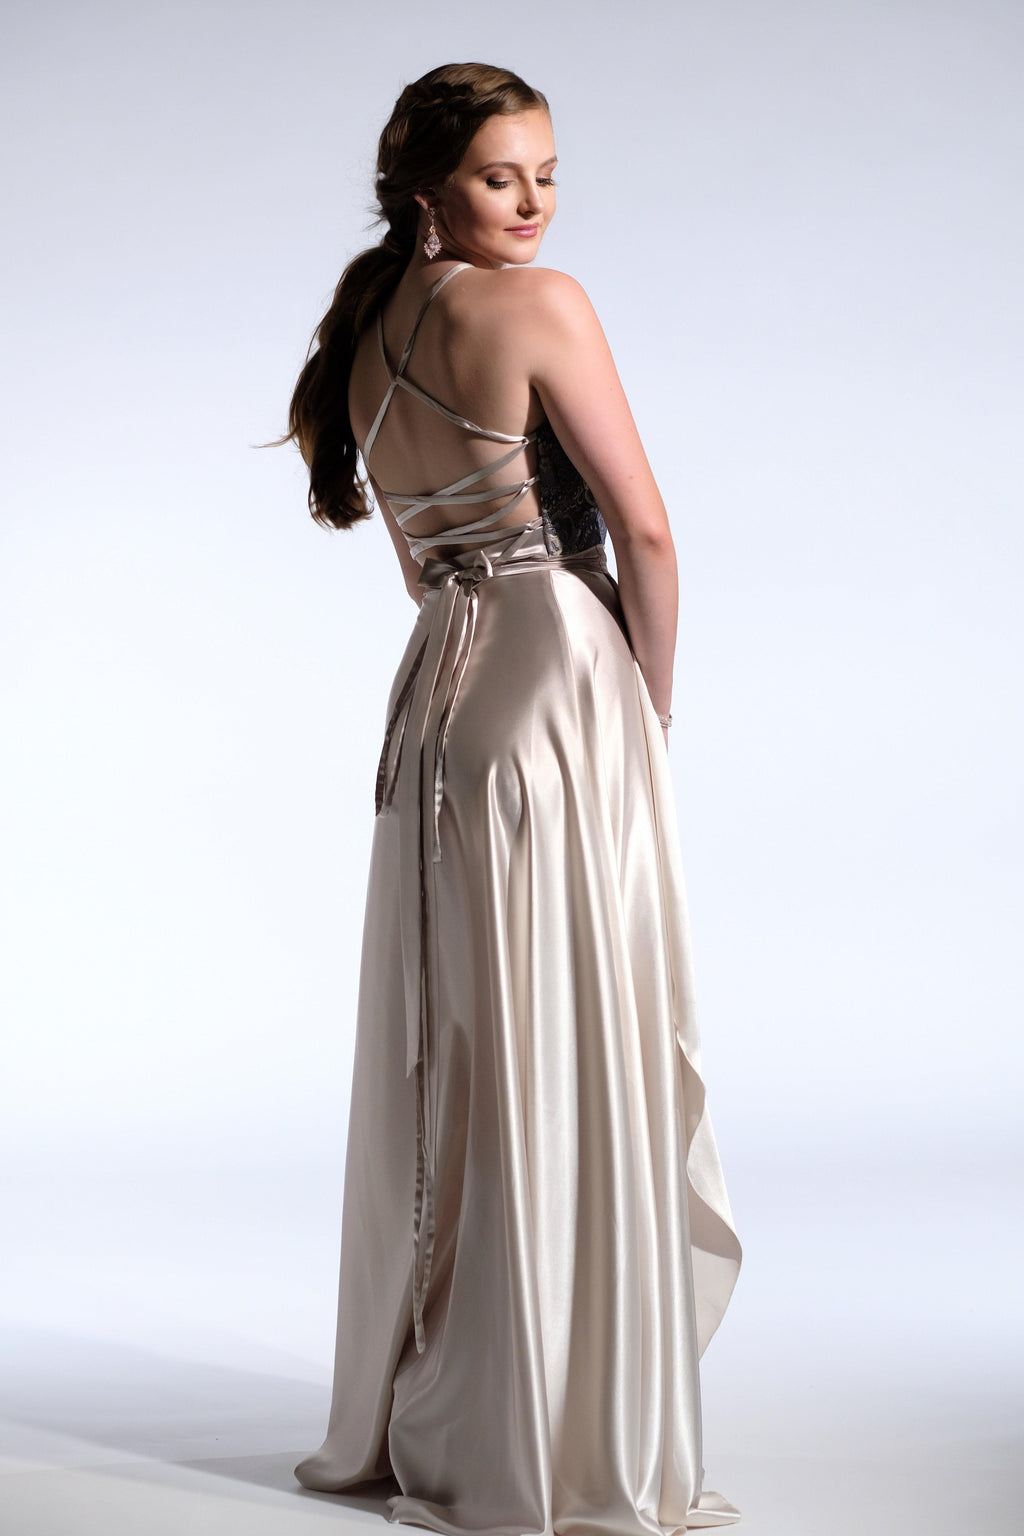 wrap n'strap back Formal Gown